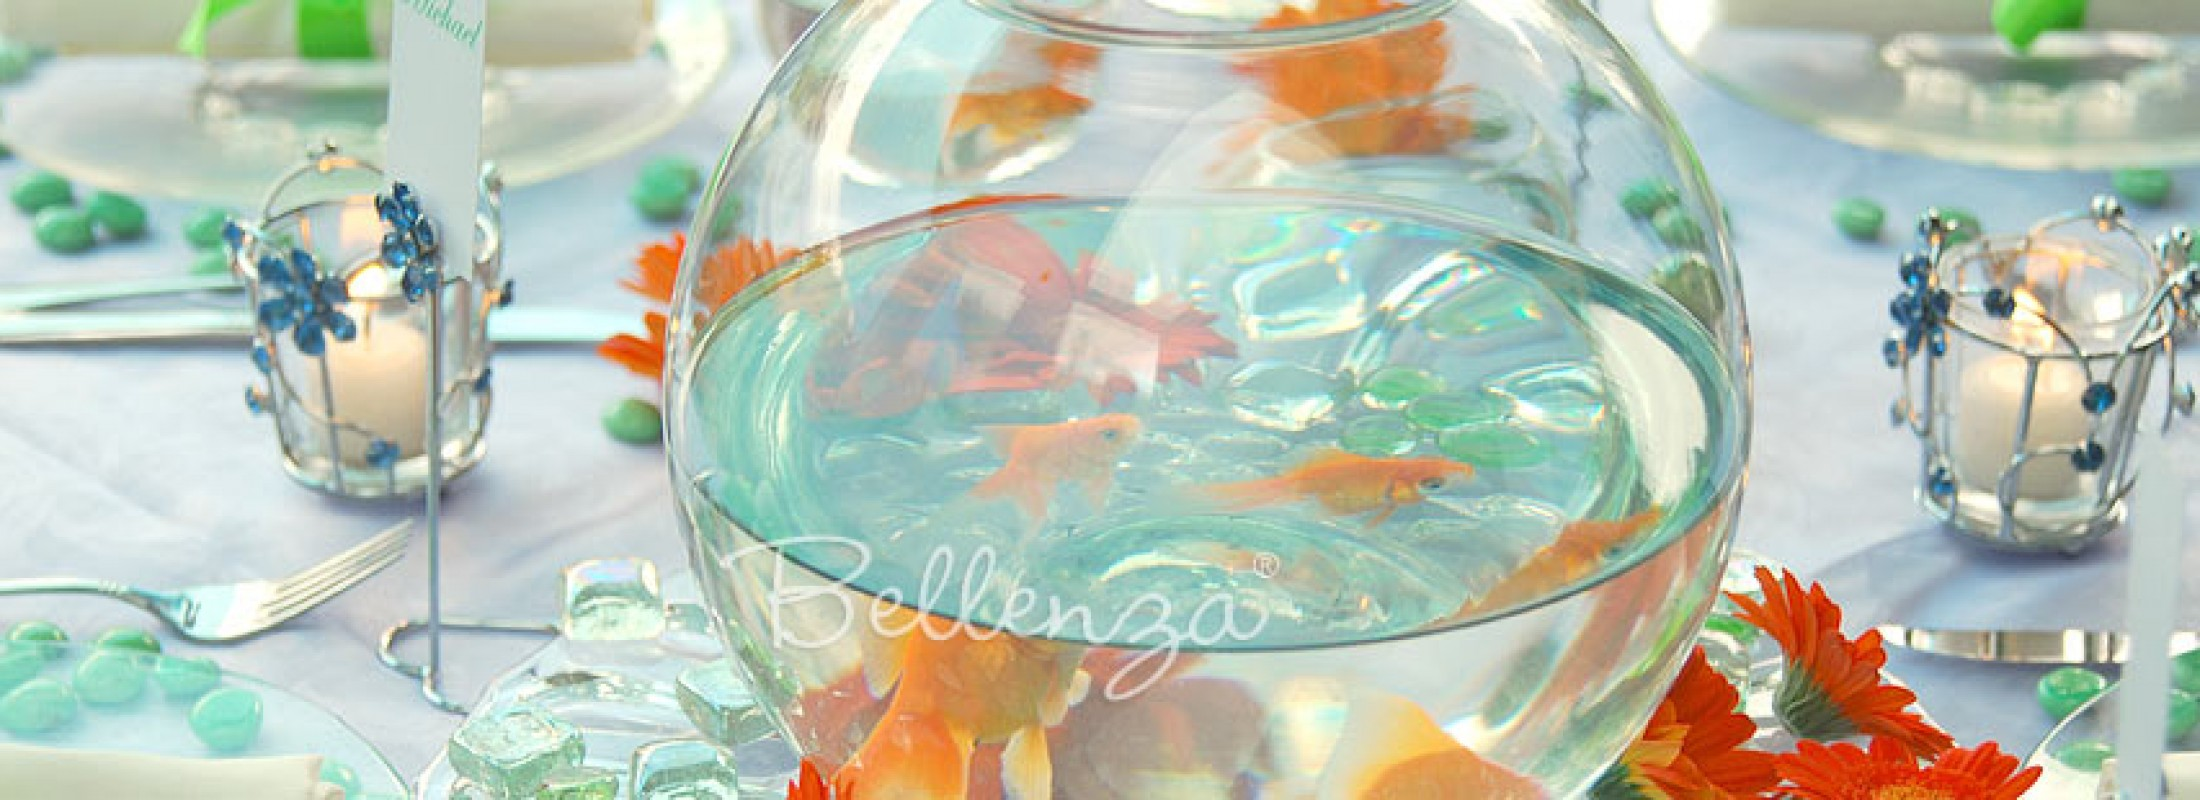 See Do How To Make Fishbowl Centerpieces For A Birthday